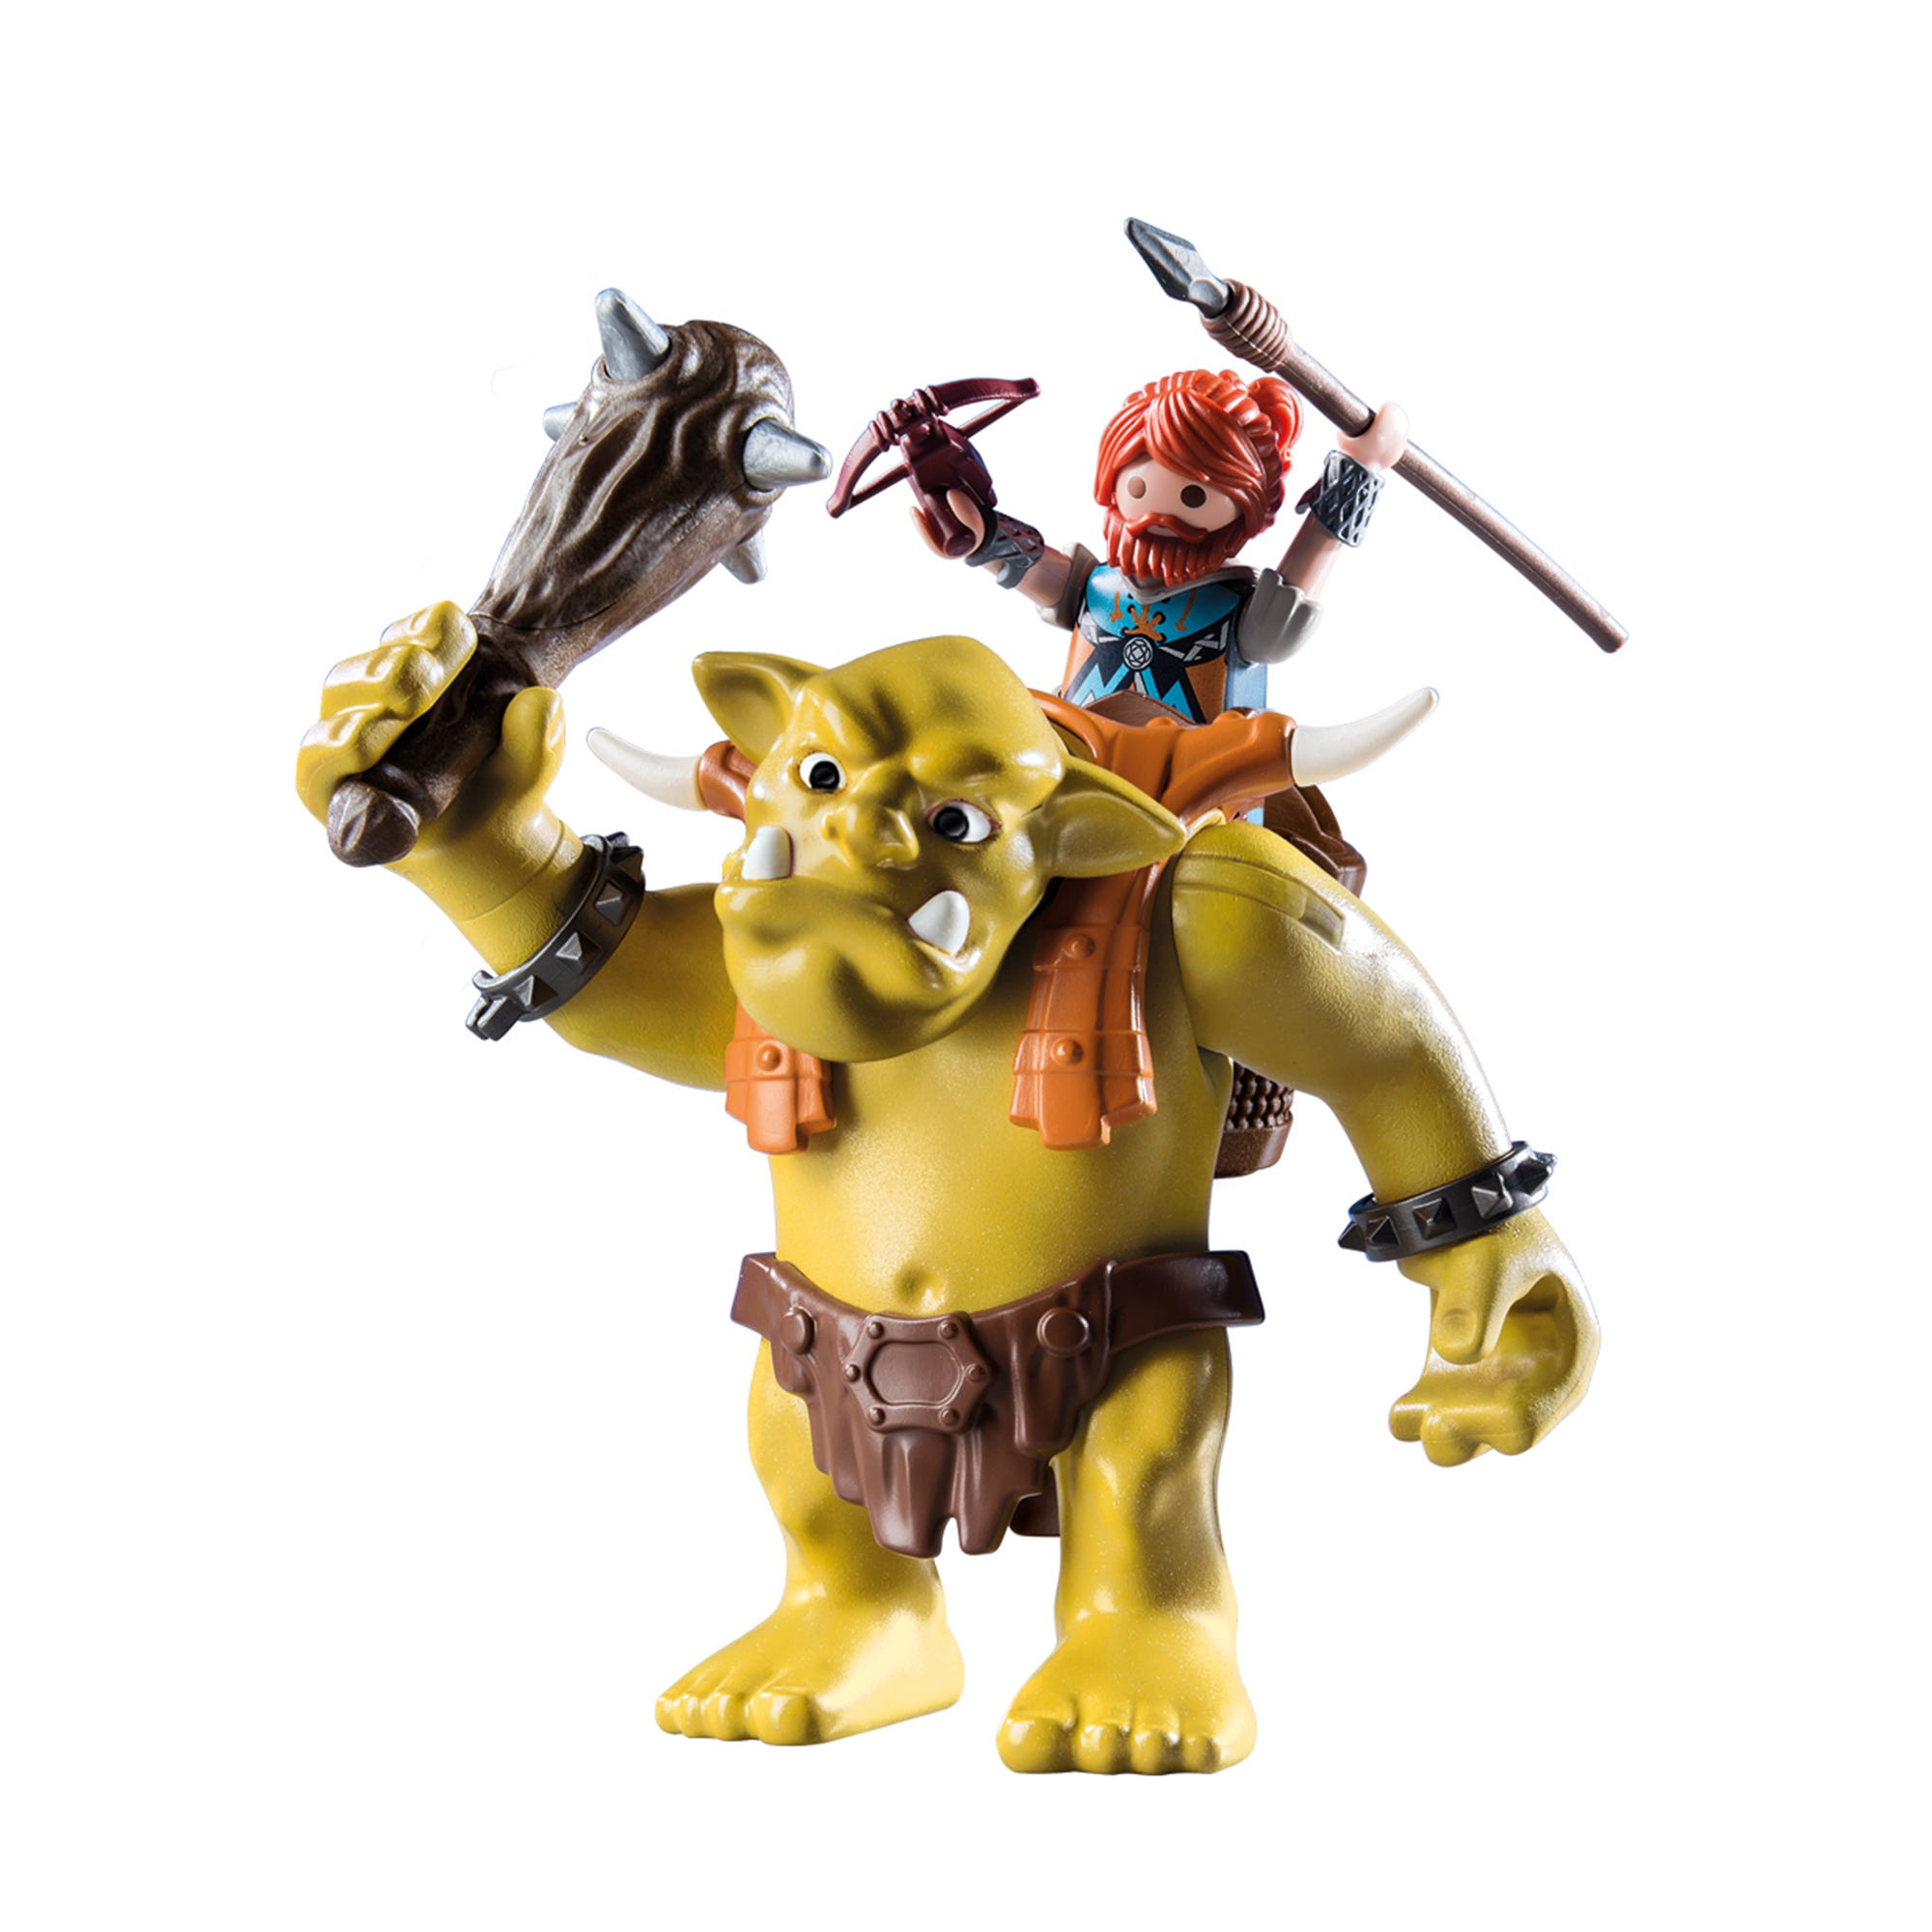 Playmobil 9343 Knights Giant Troll With Dwarf Fighter With Removeable Backpack